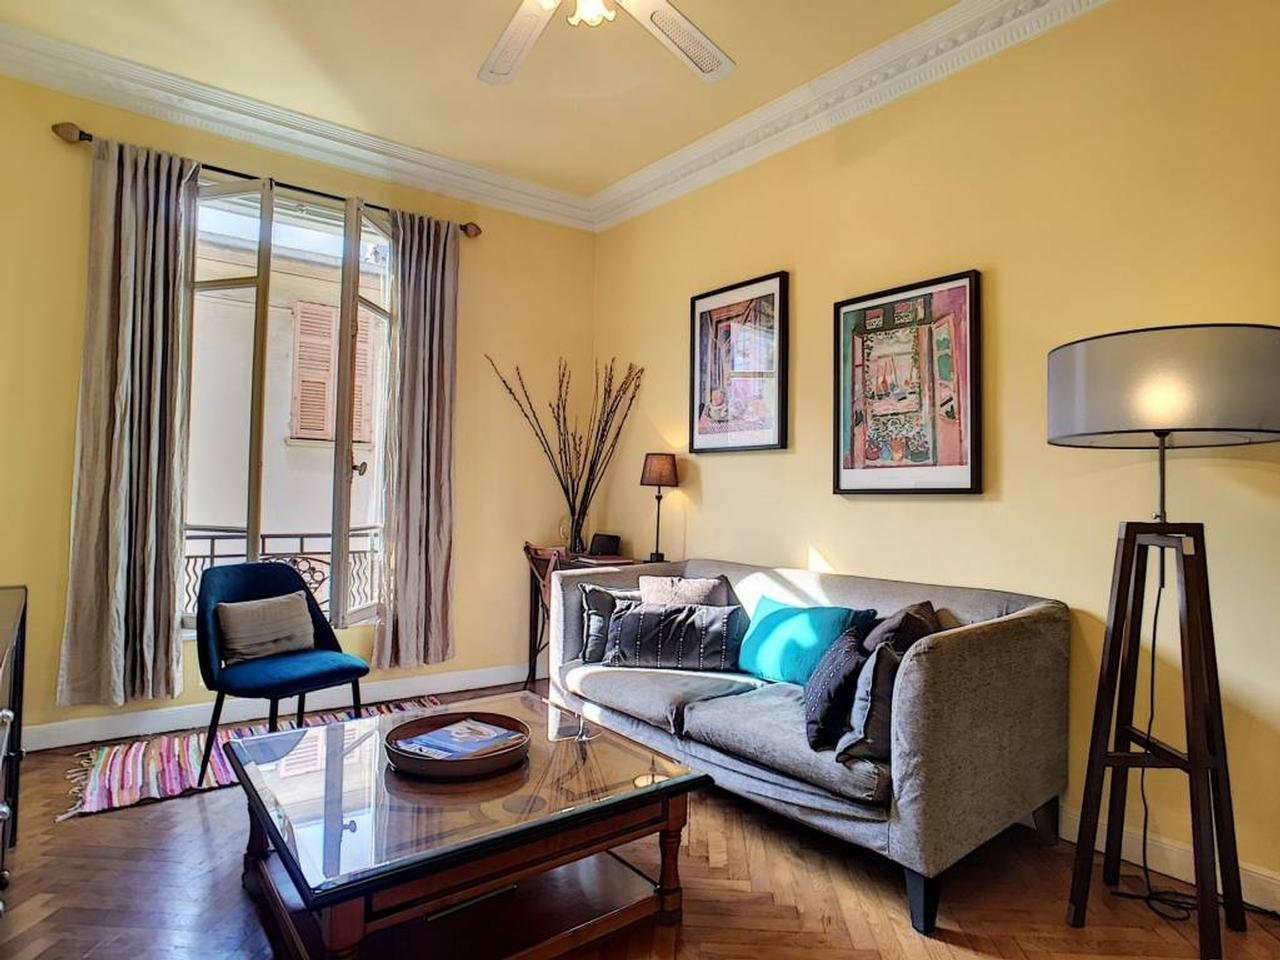 Appartement  3 Rooms 47m2  for sale   350000 €